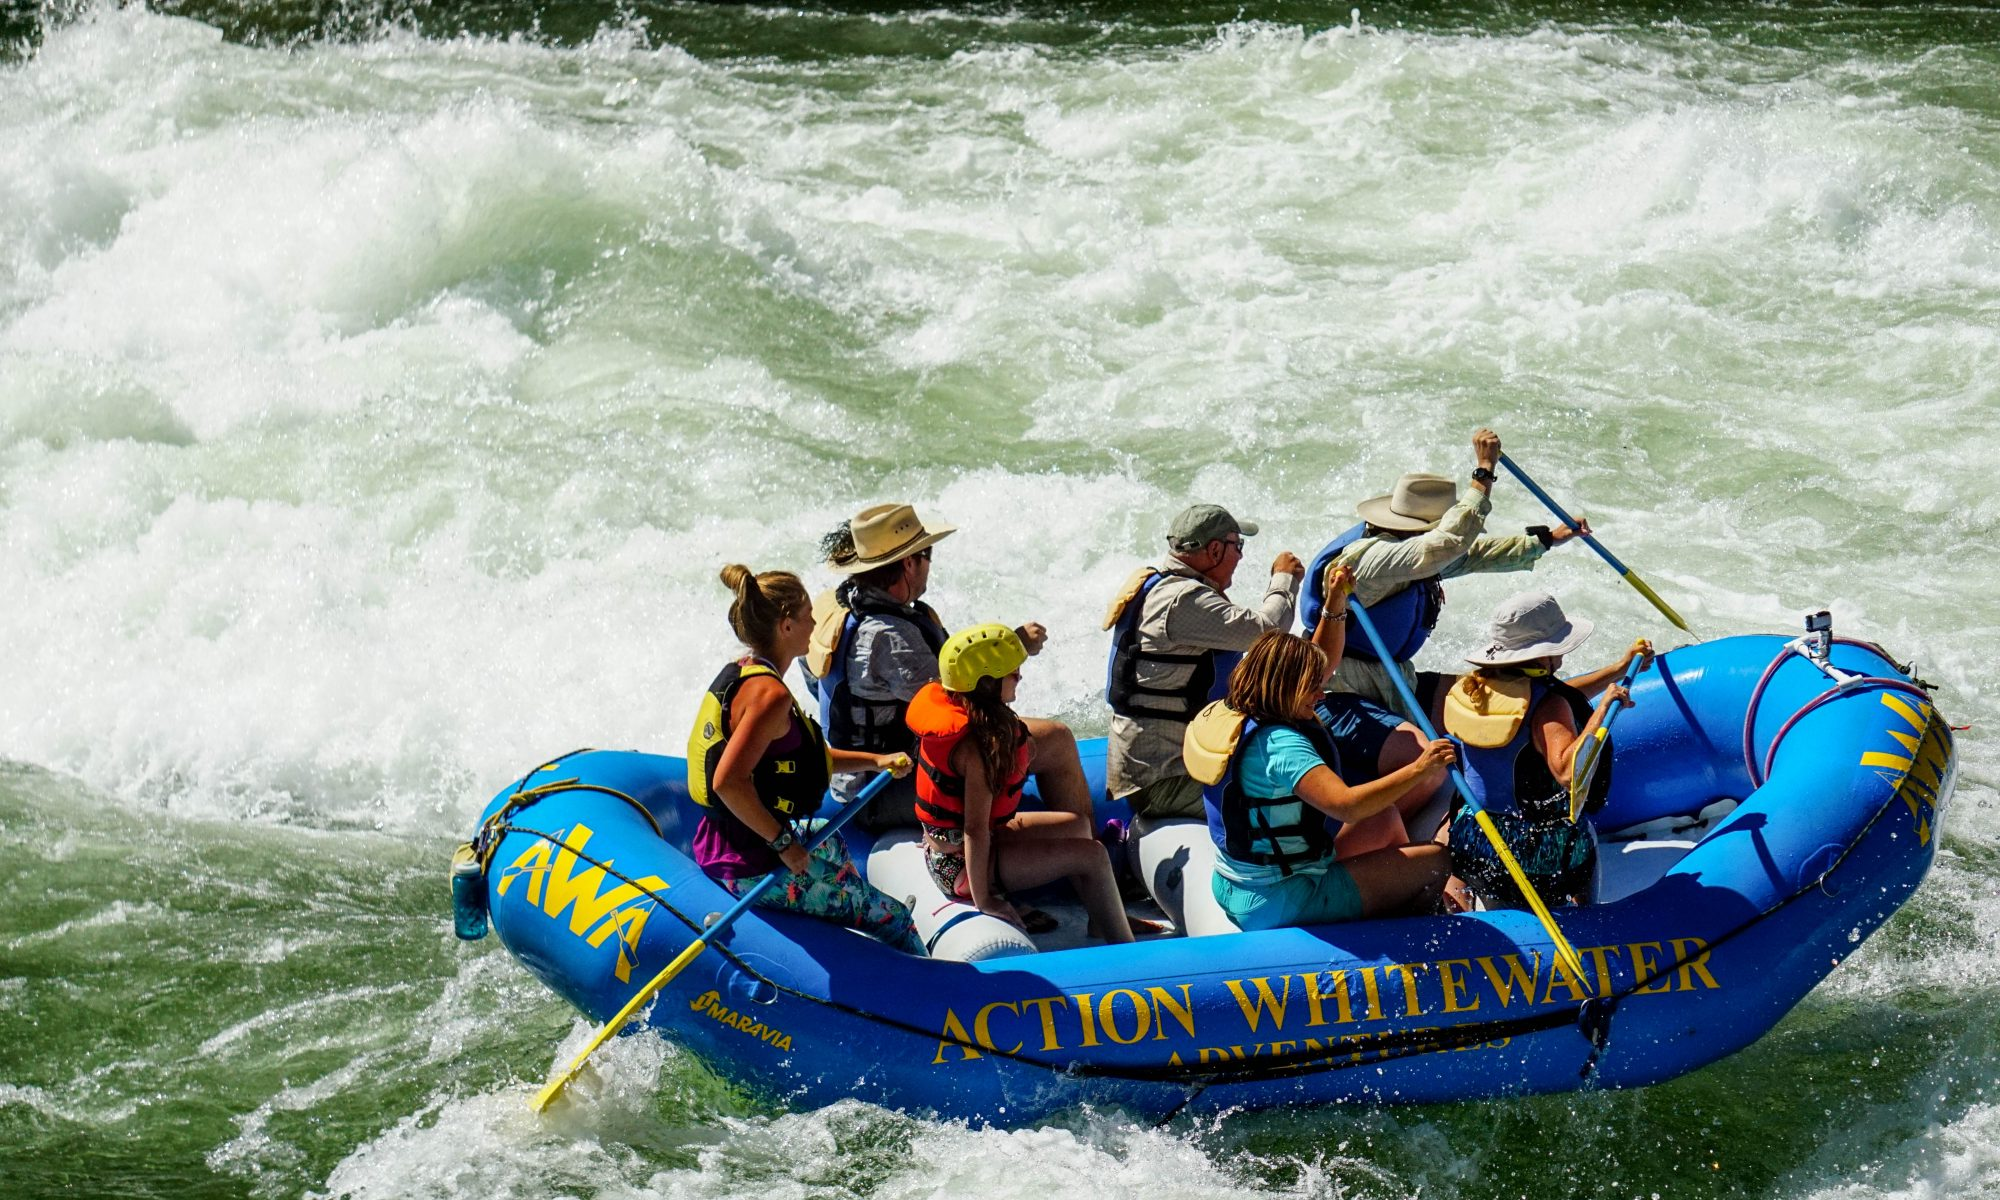 Action Whitewater Adventures 1-800-453-1482